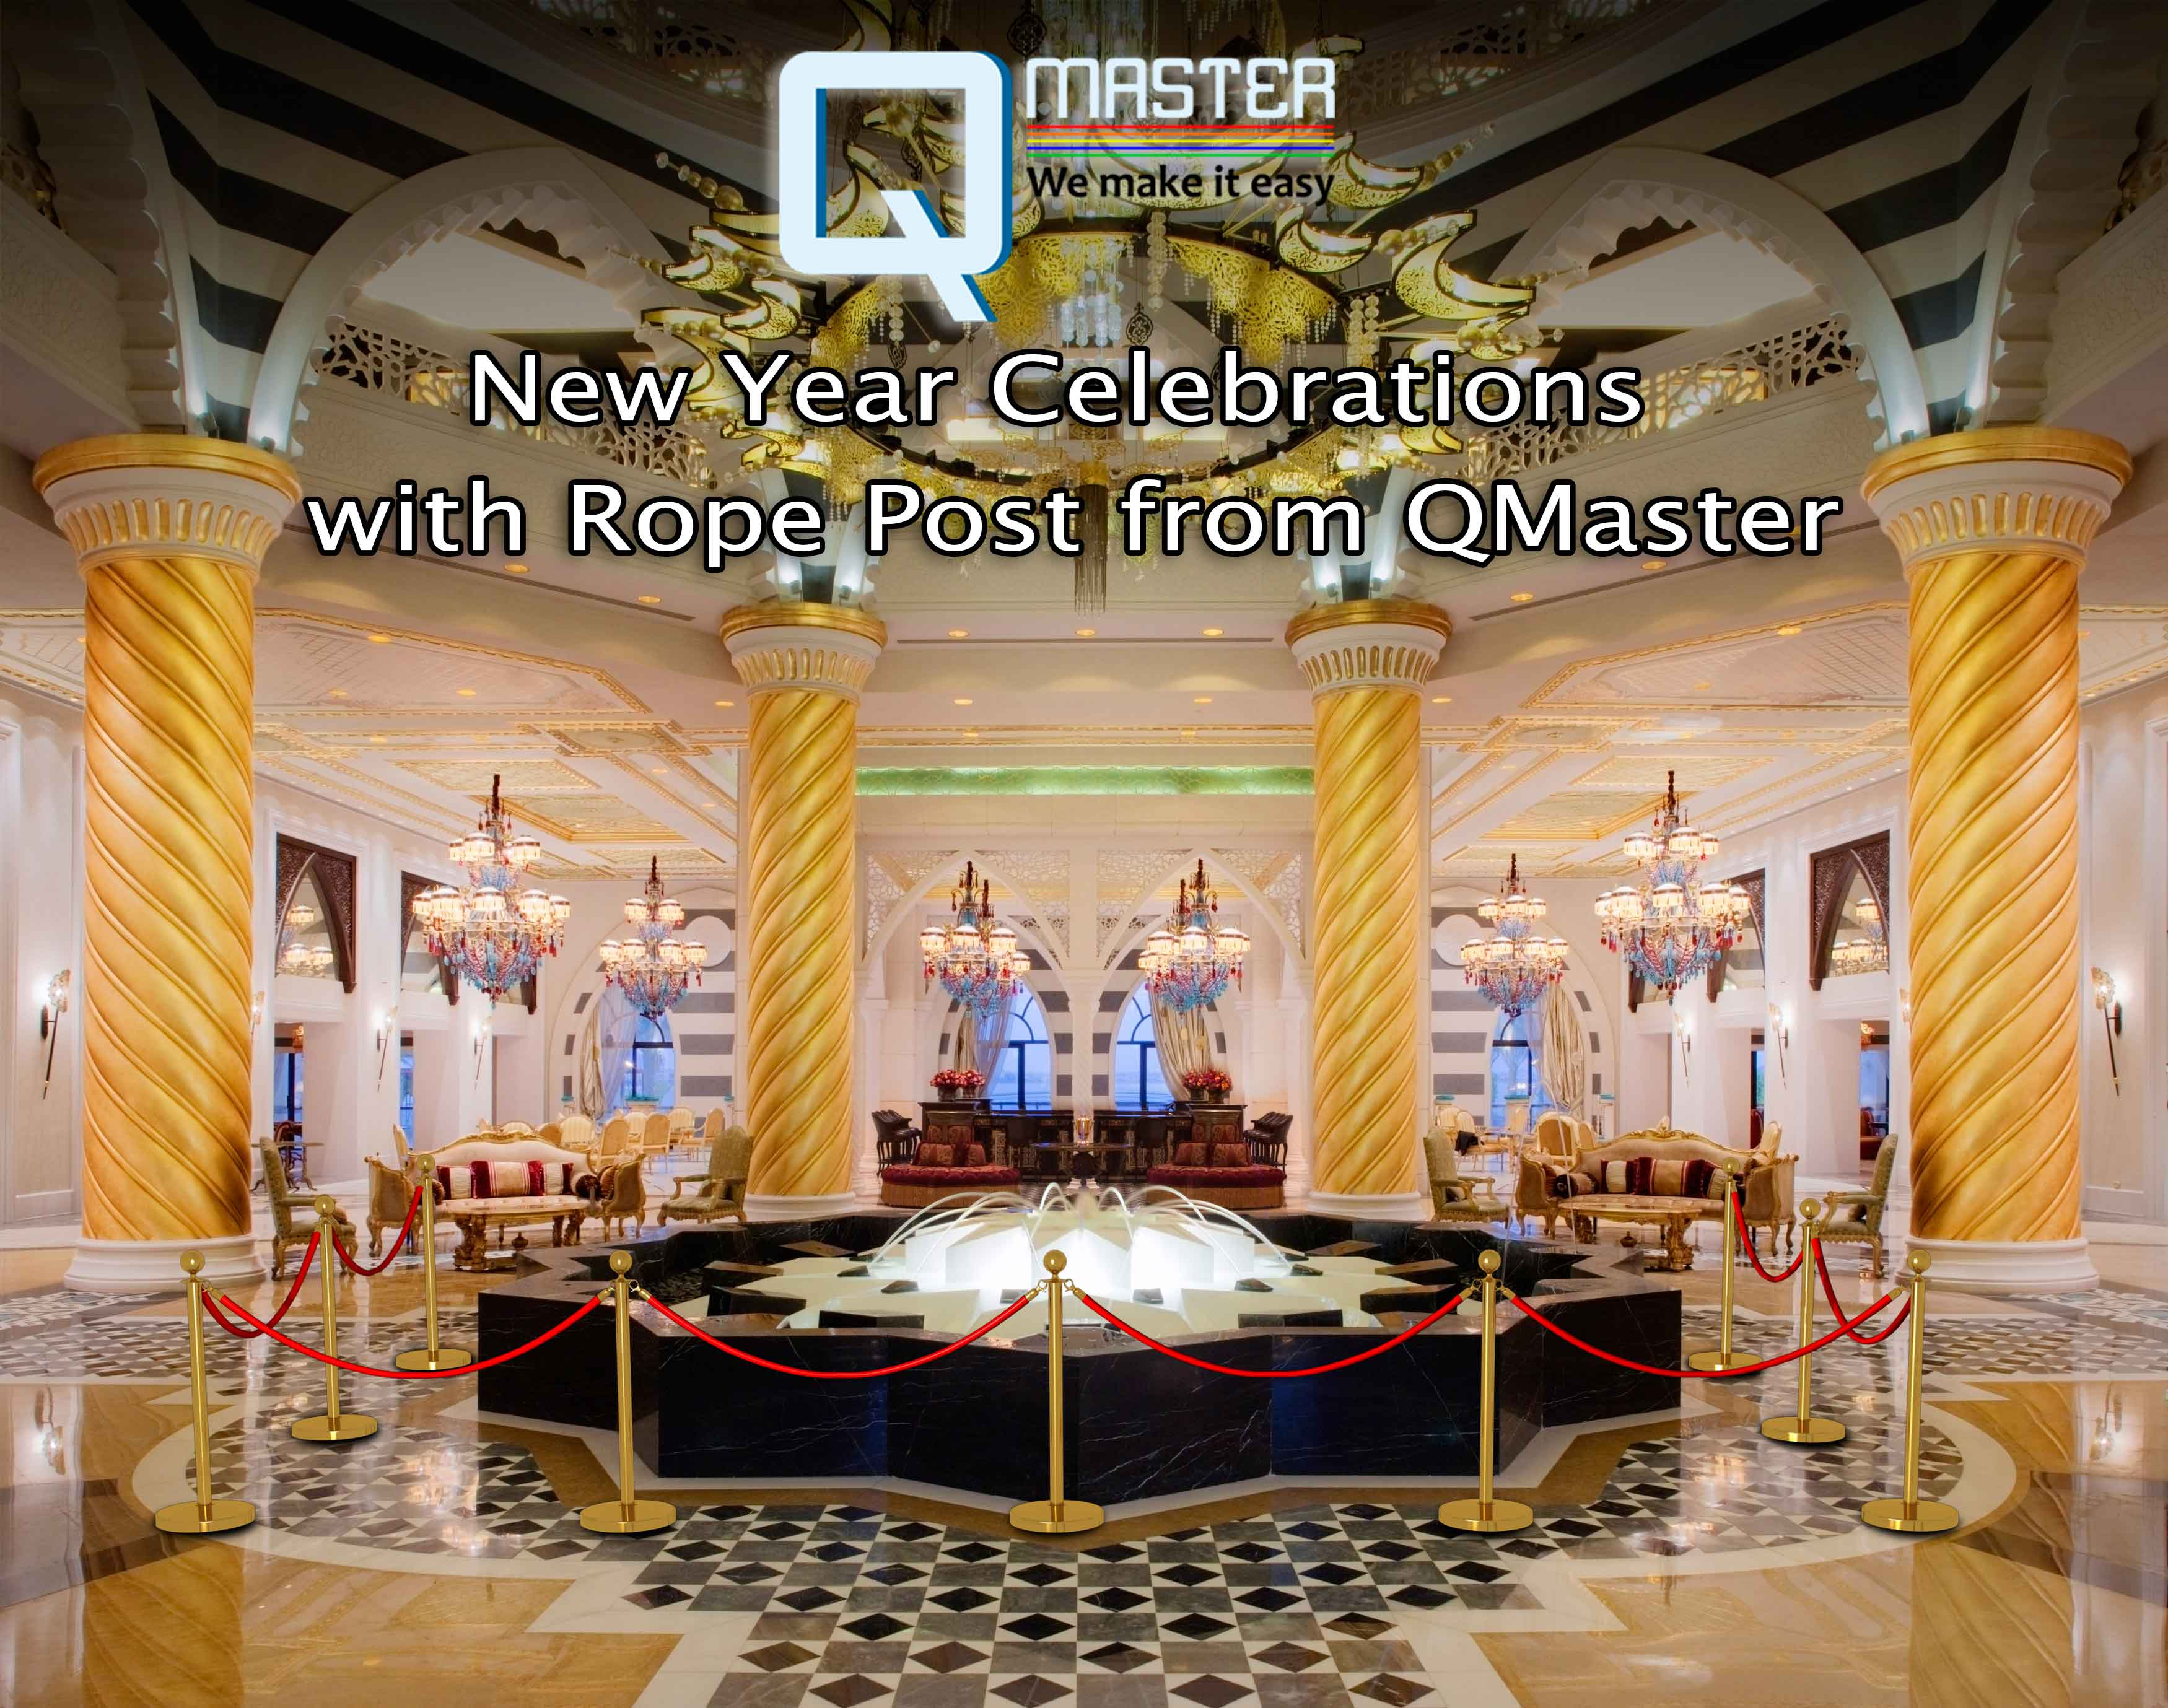 Add-an-extra-spark-to-your-New-Year-Celebration-with-Rope-Post-from-QMaster